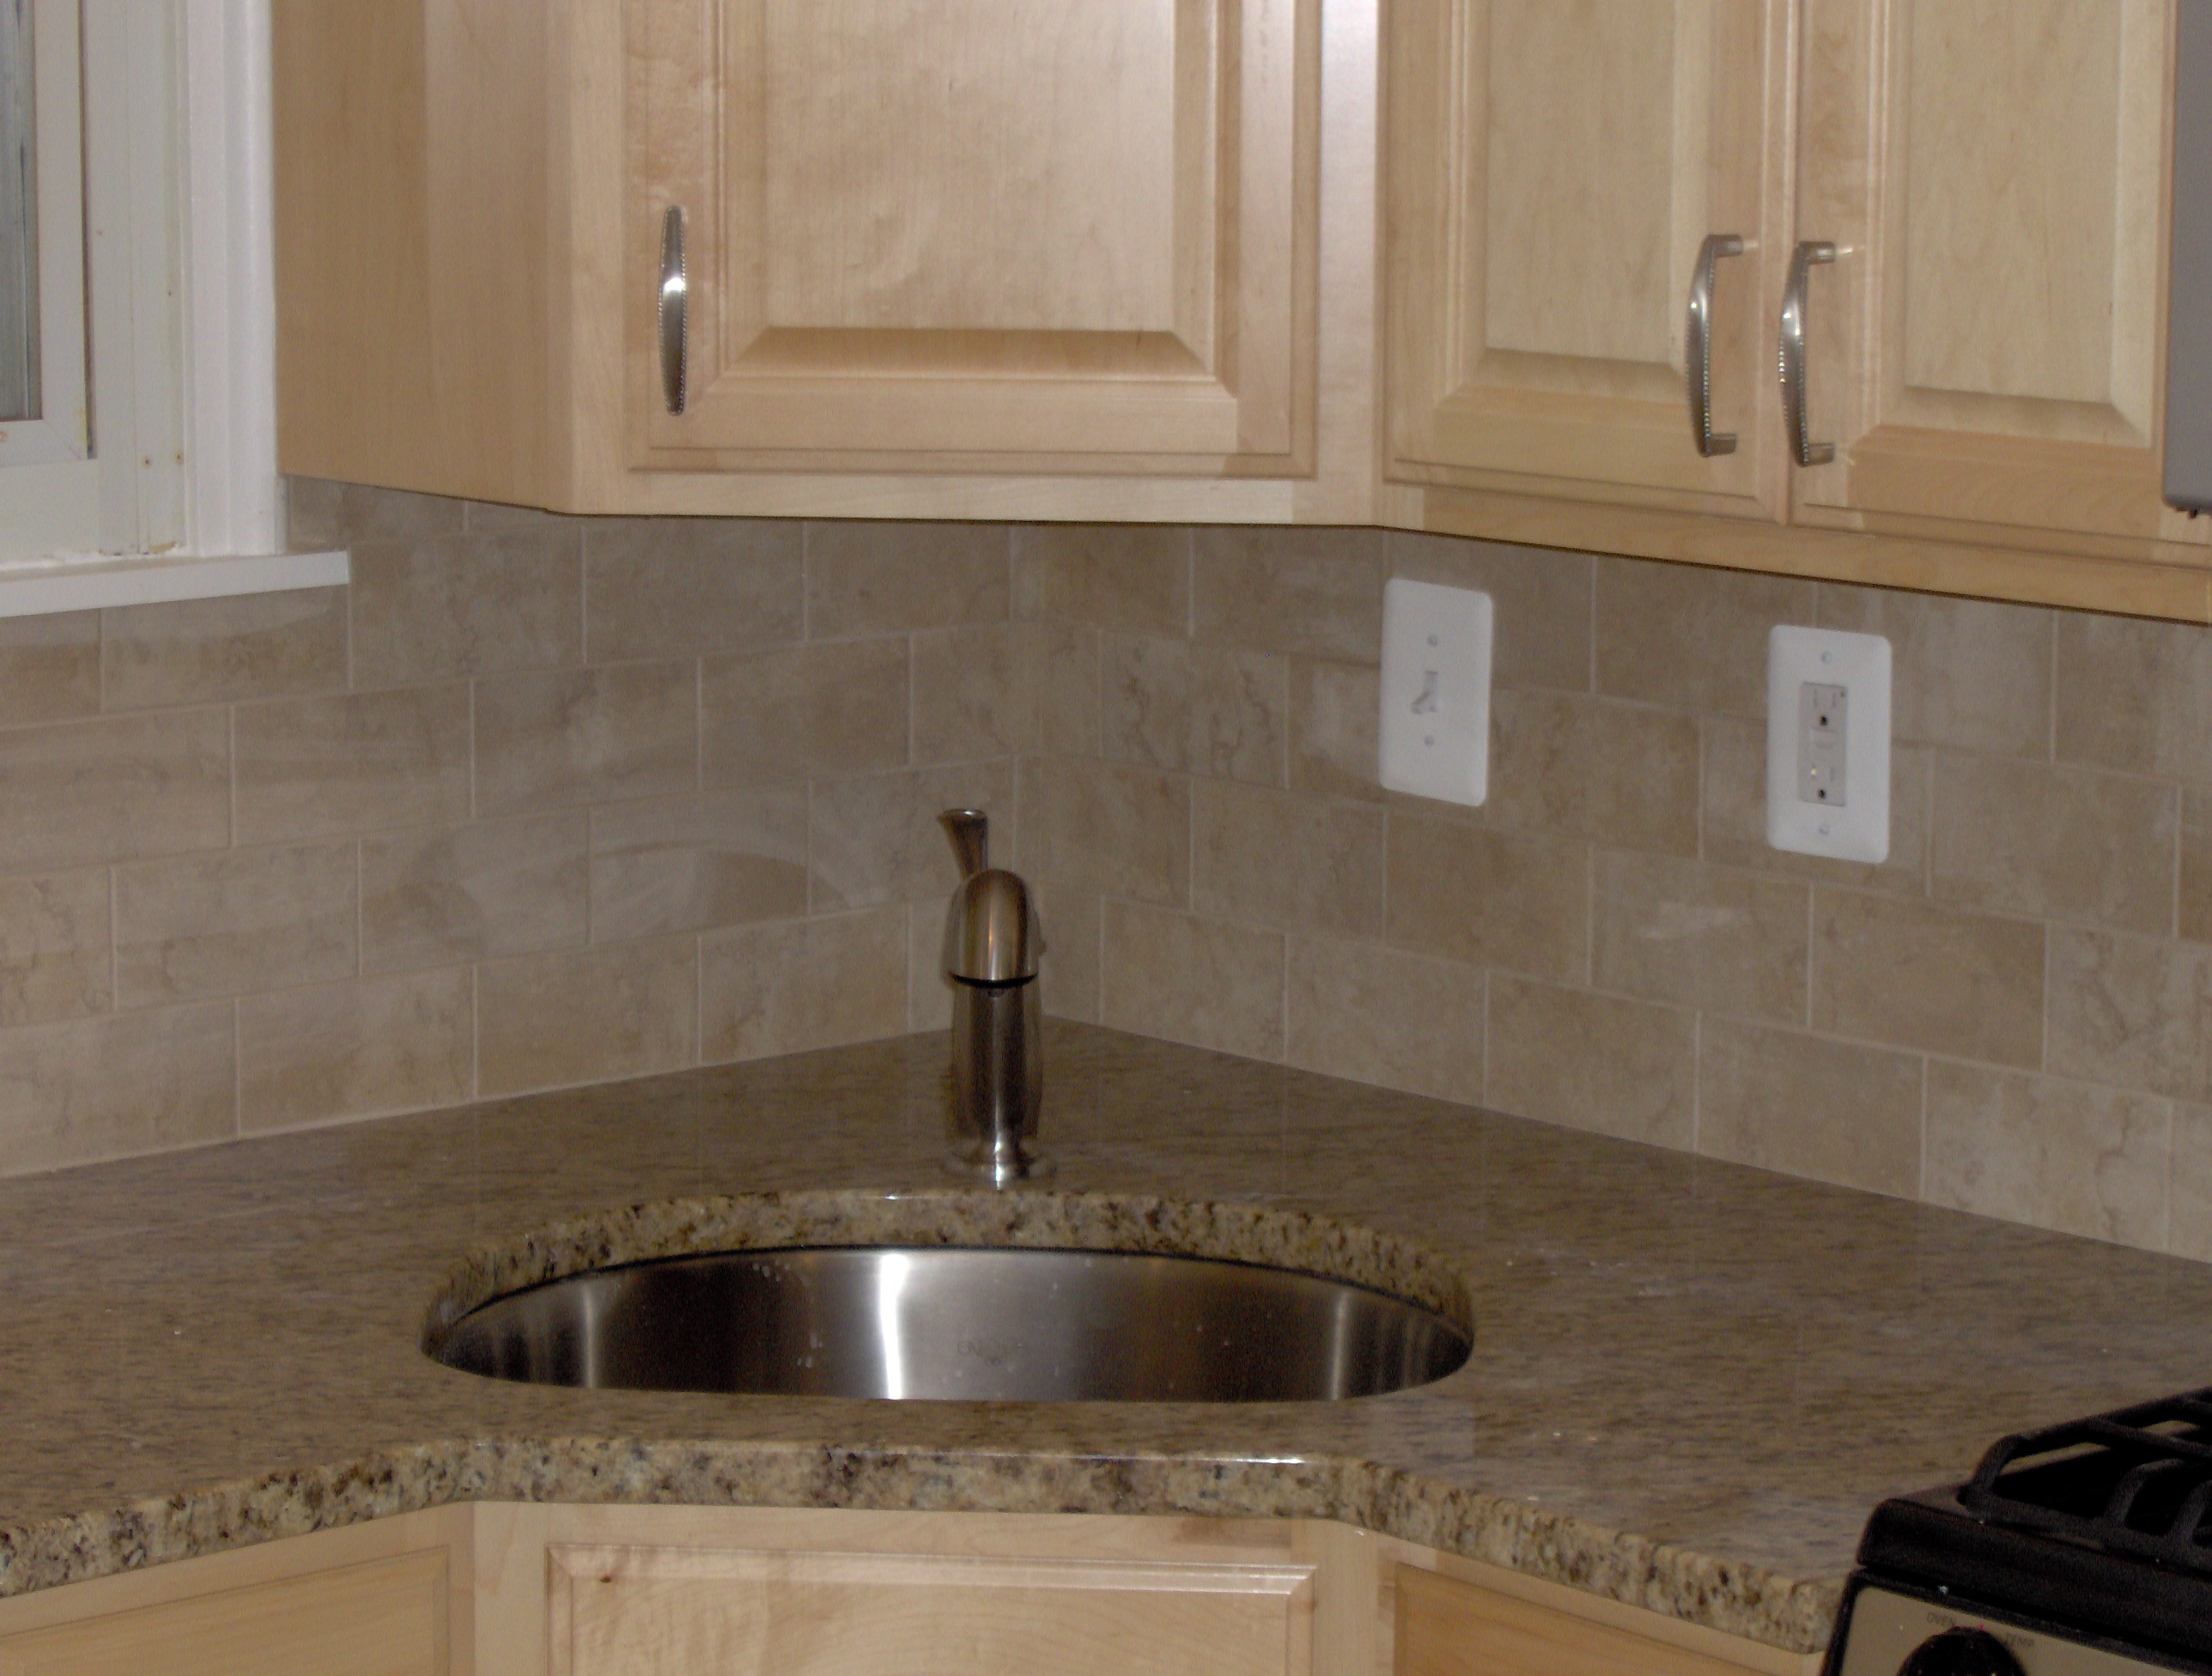 Offering Quality Services by our Maryland Plumber